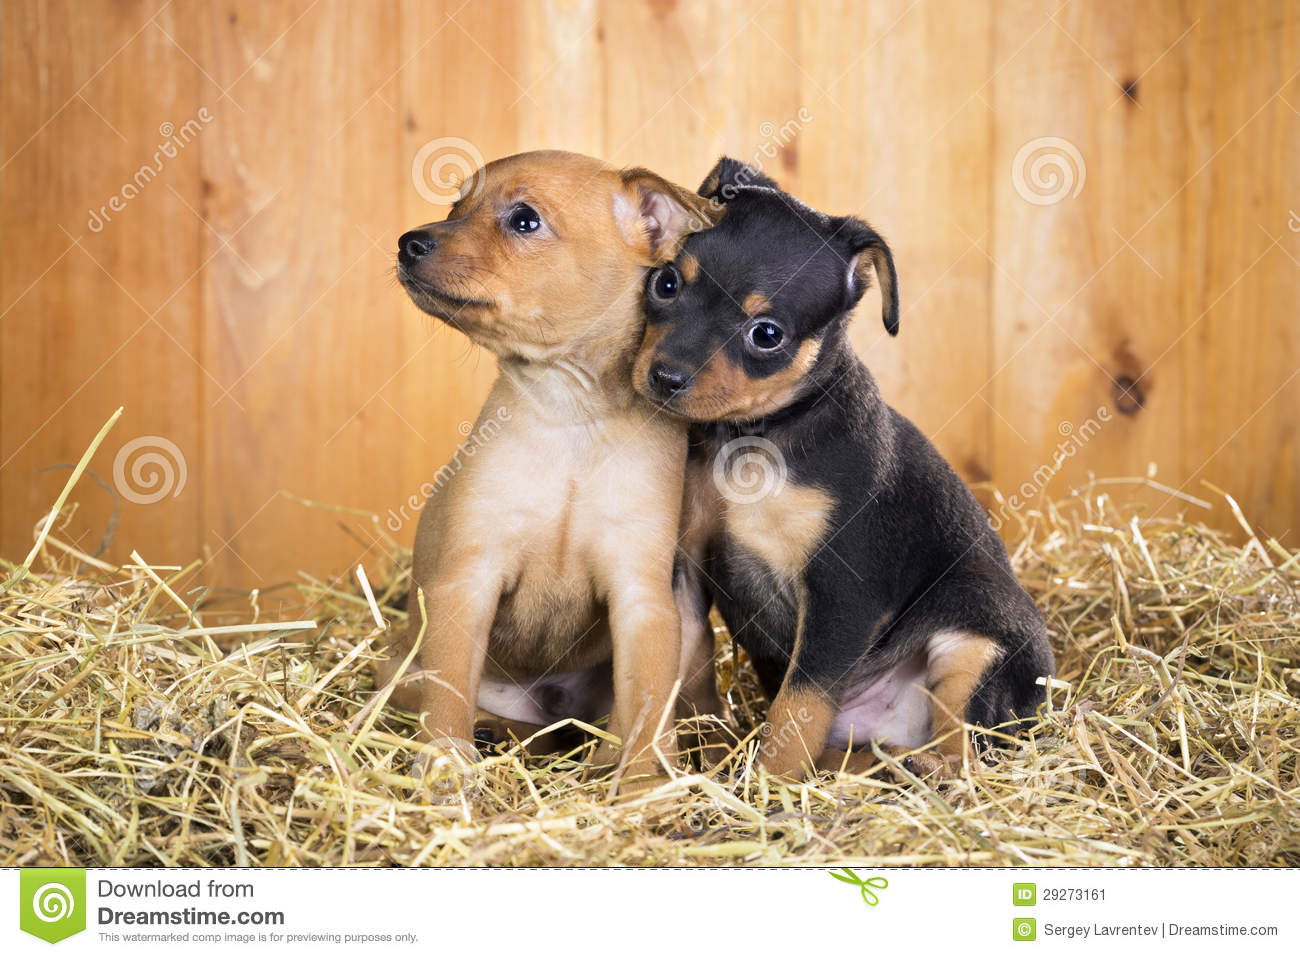 Russian Toy Puppies: Russian Stock Two Russian Toy Terrier Puppies Breed